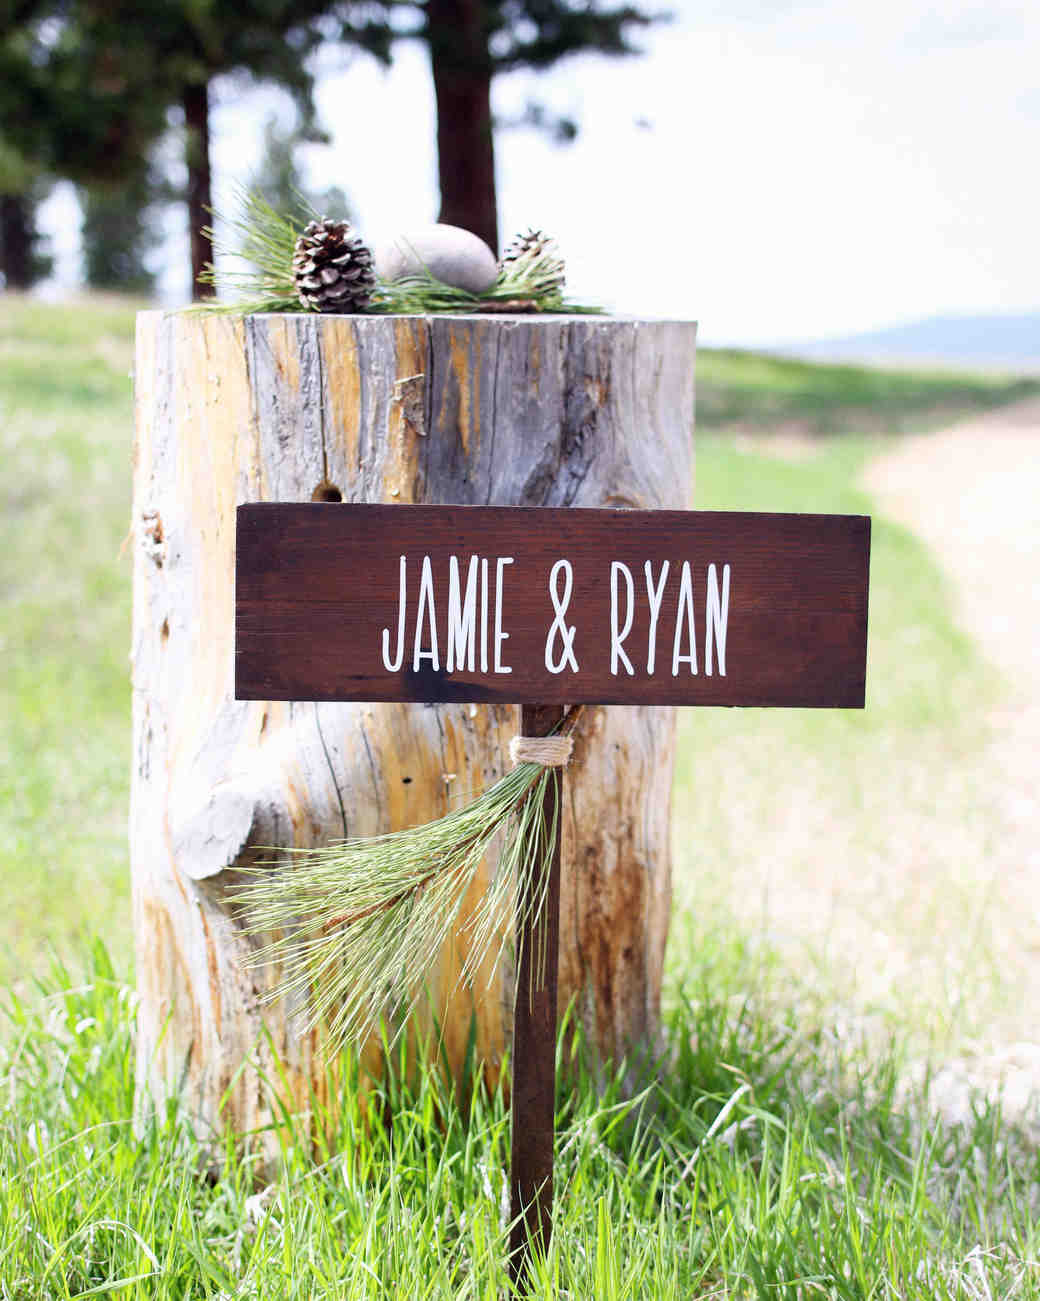 jamie-ryan-wedding-sign-023-s111523-0914.jpg